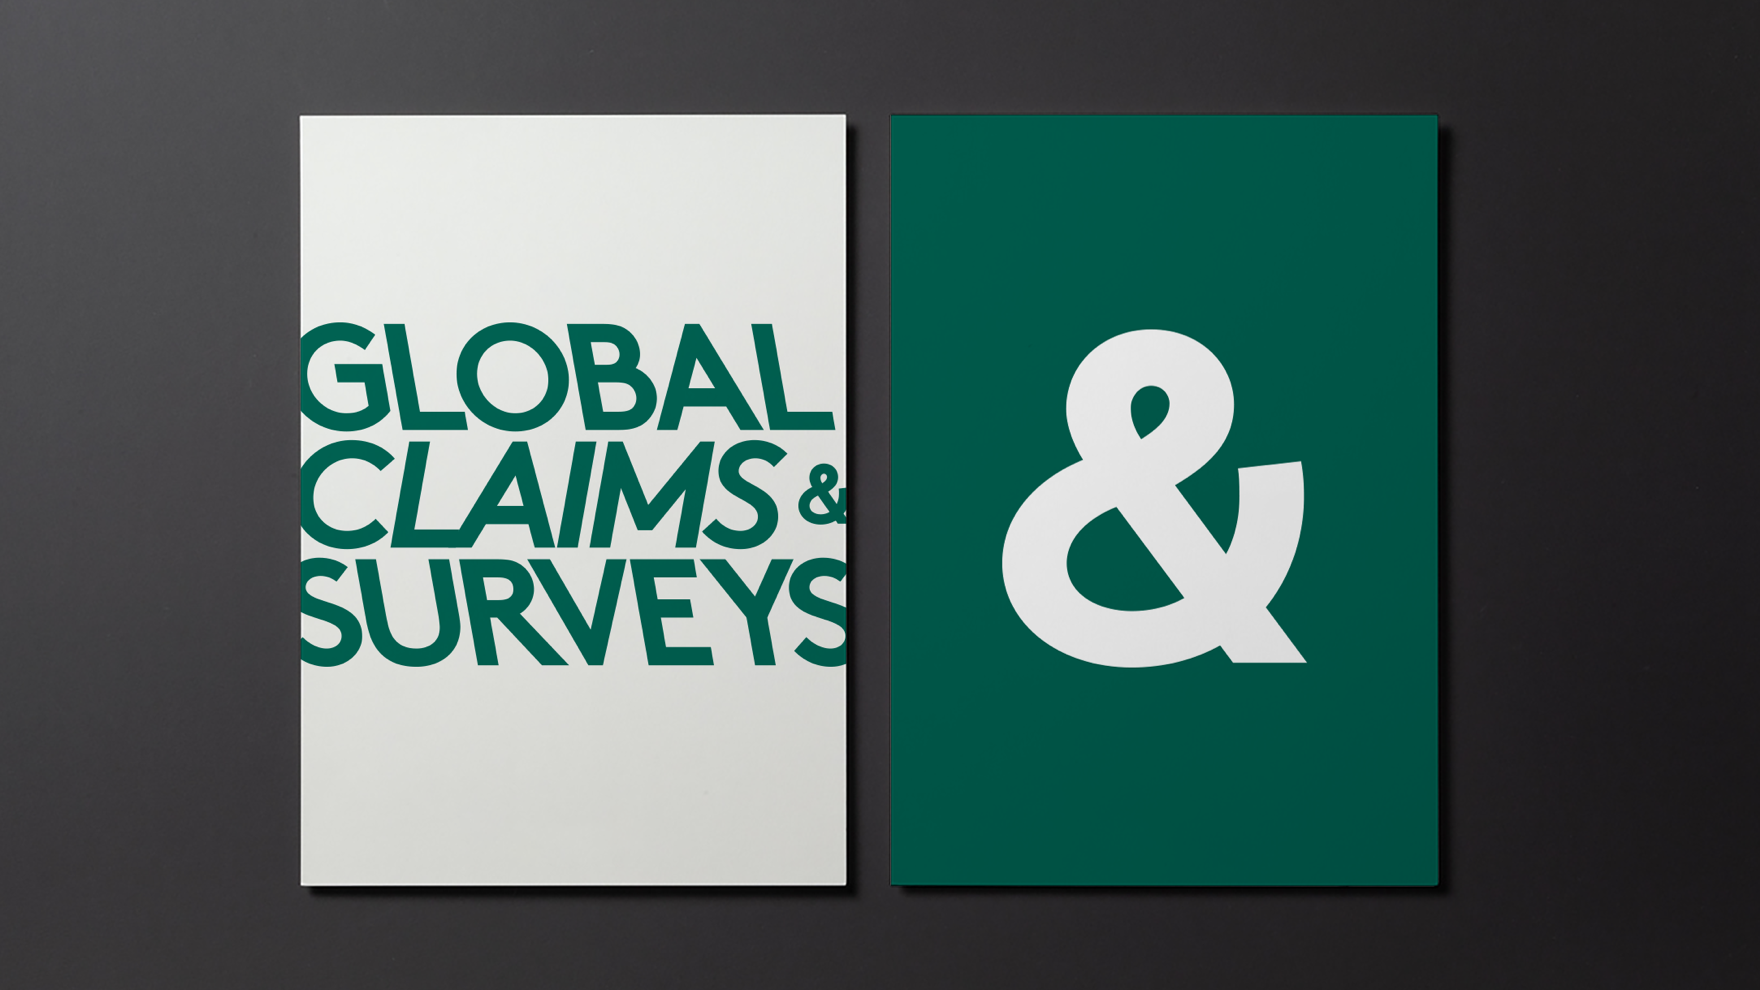 GLOBAL CLAIMS & SURVEYS / IDENTITAT CORPORATIVA / BRANDING